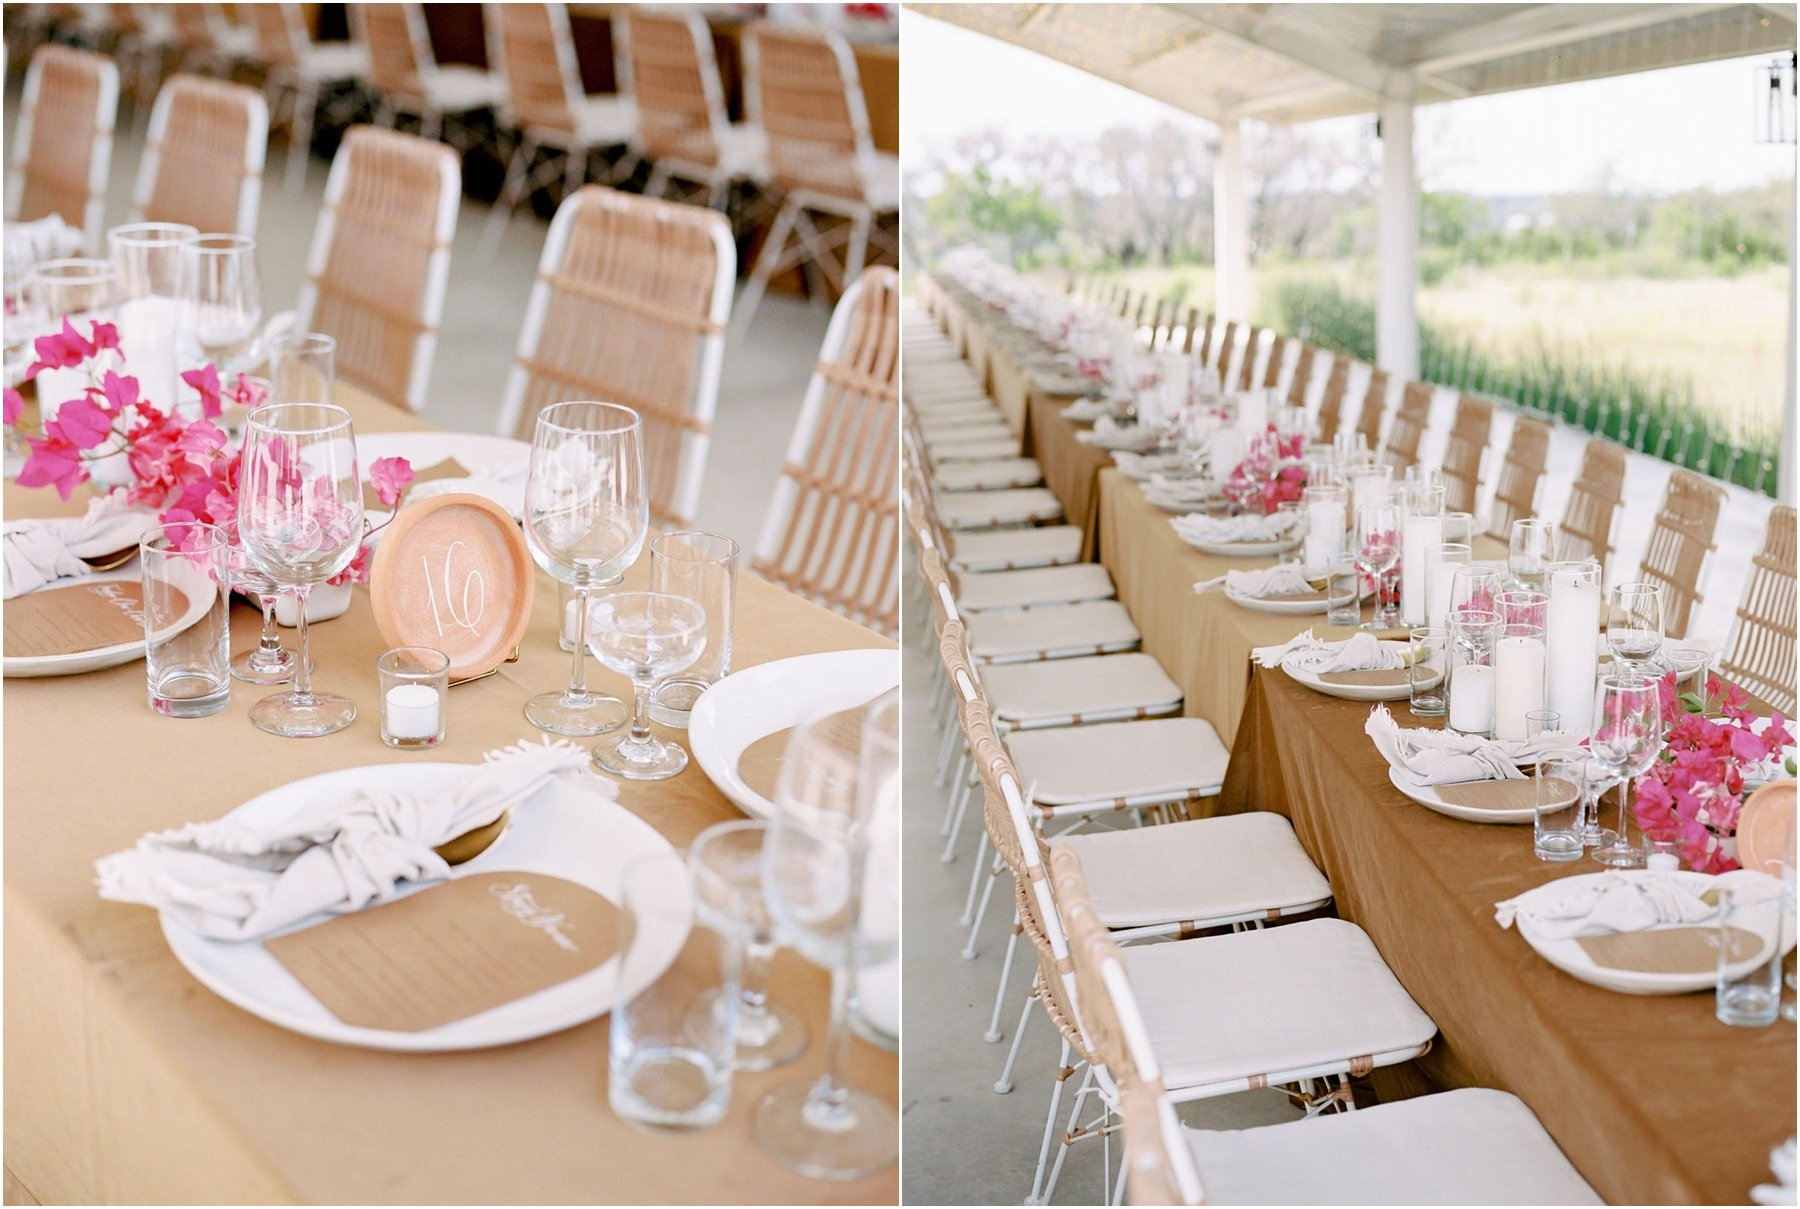 wedding reception tables with wicker chairs and bougainvillea florals